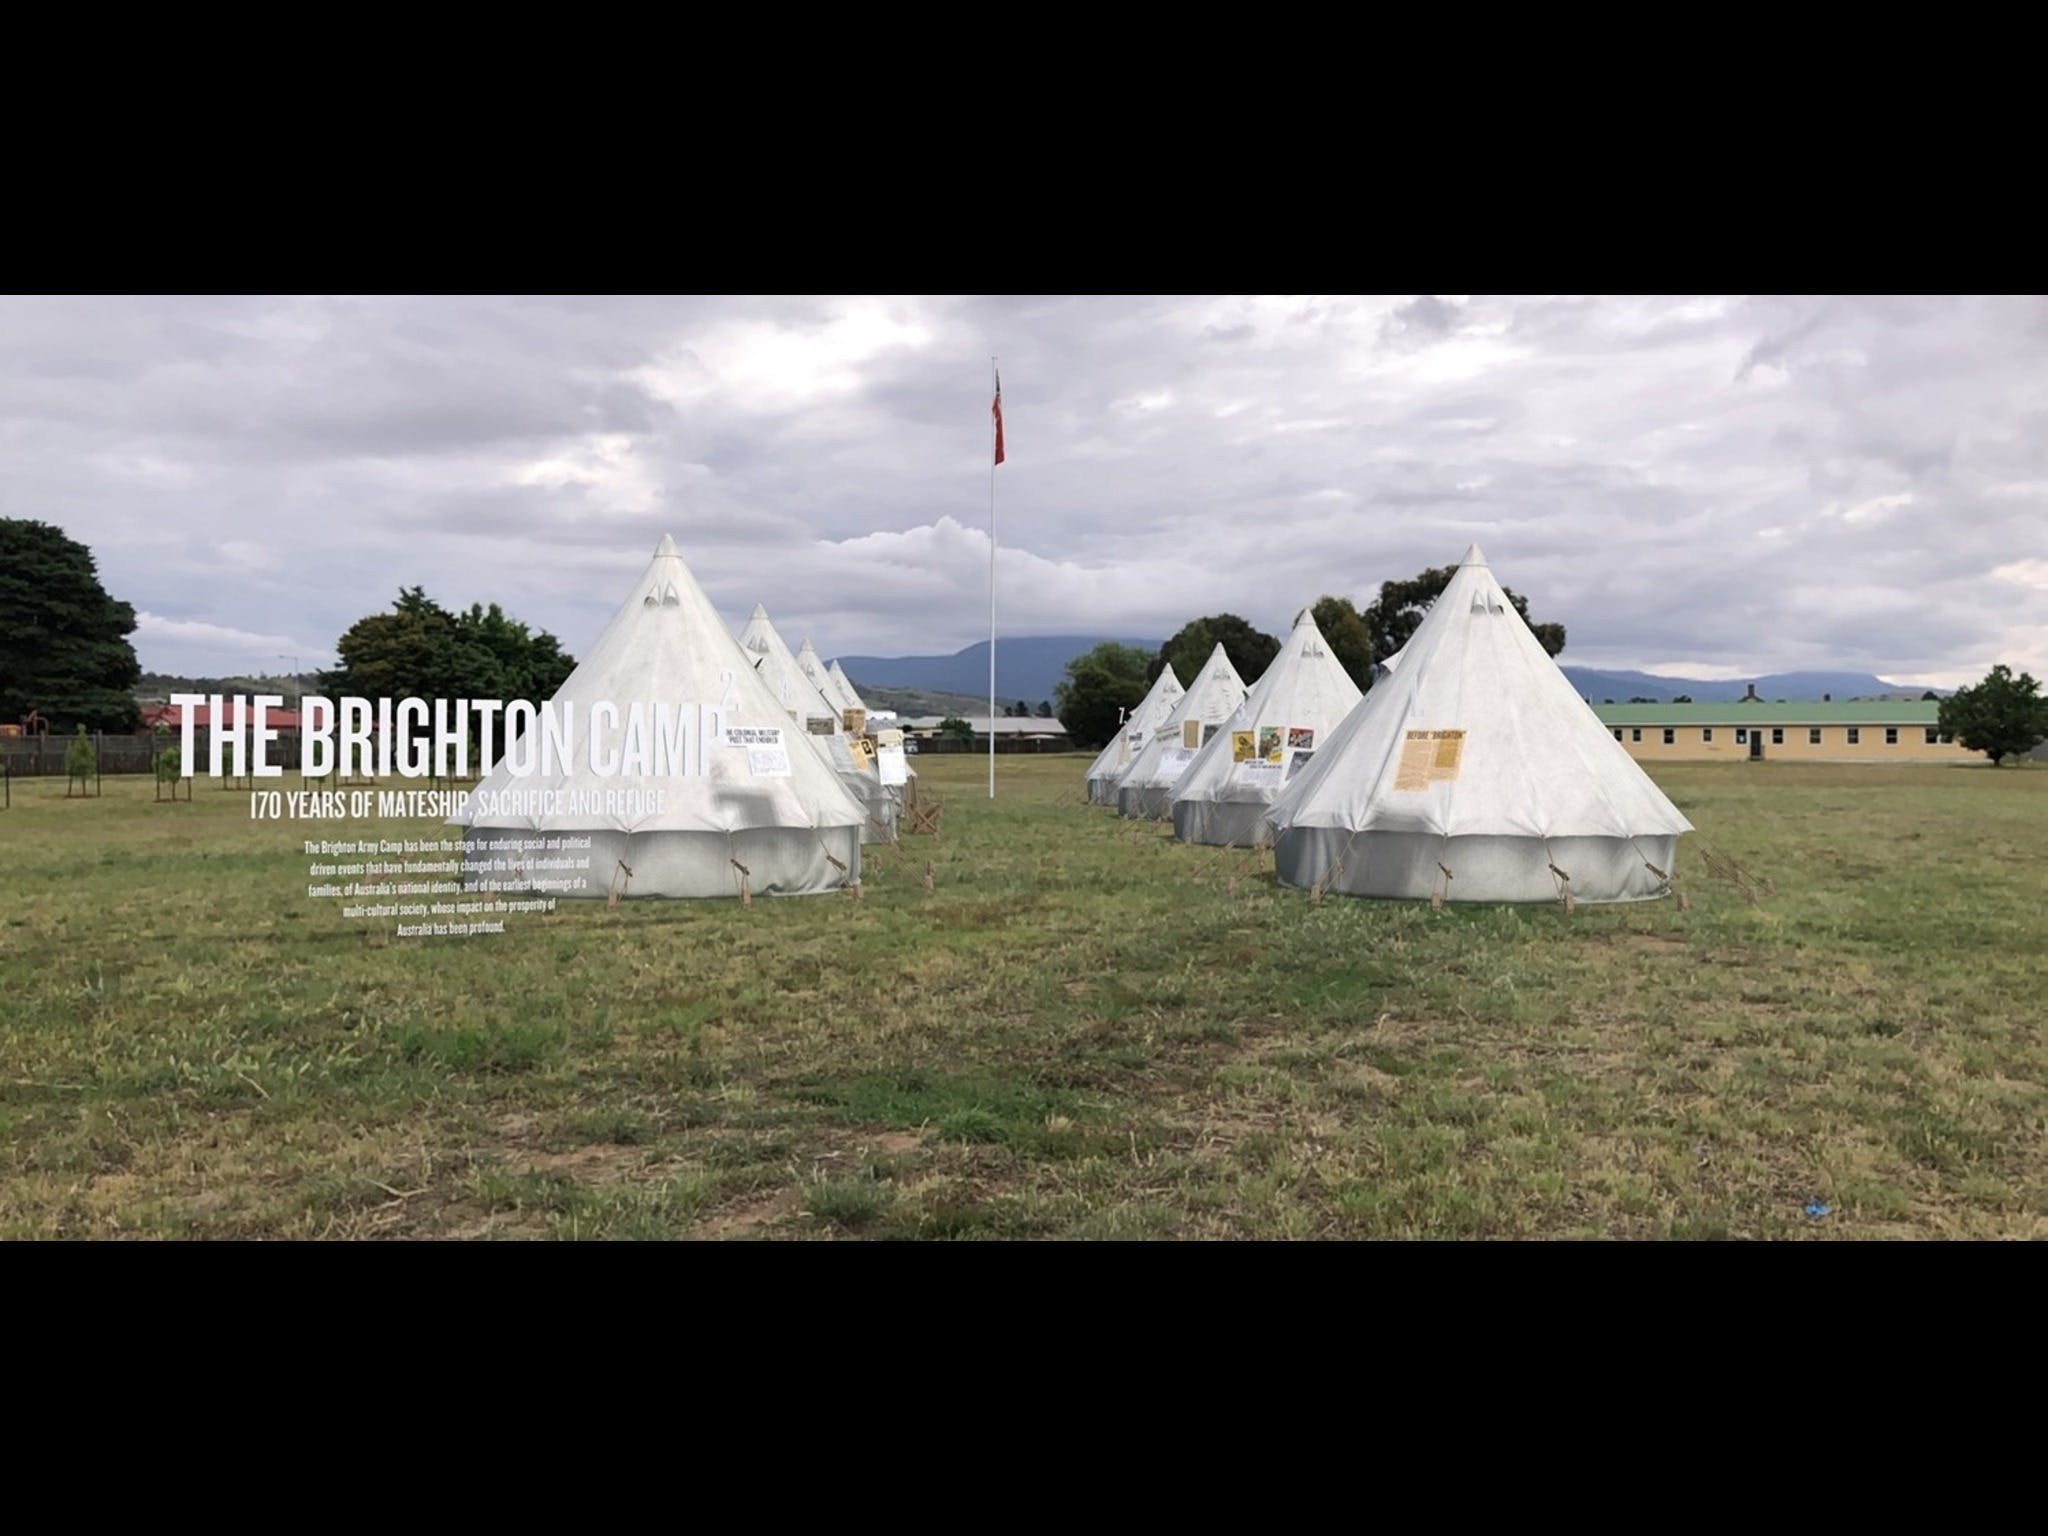 Brighton Army Camp - Accommodation in Bendigo